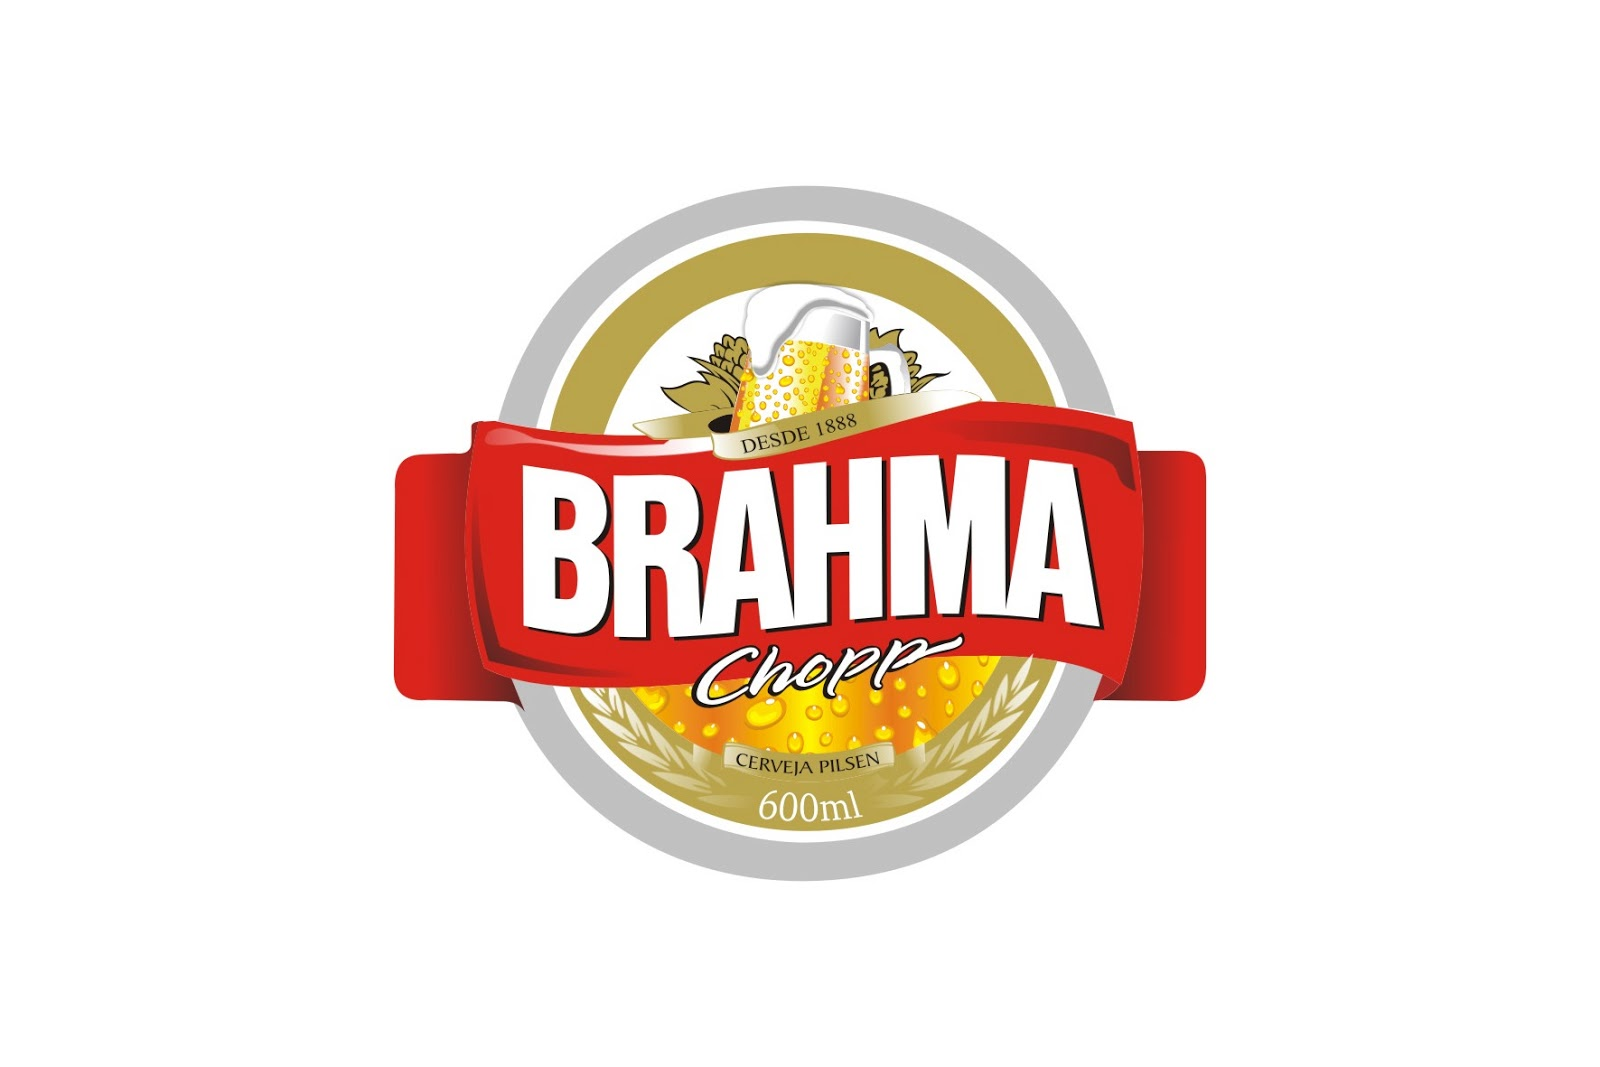 brahma logo logo share. Black Bedroom Furniture Sets. Home Design Ideas